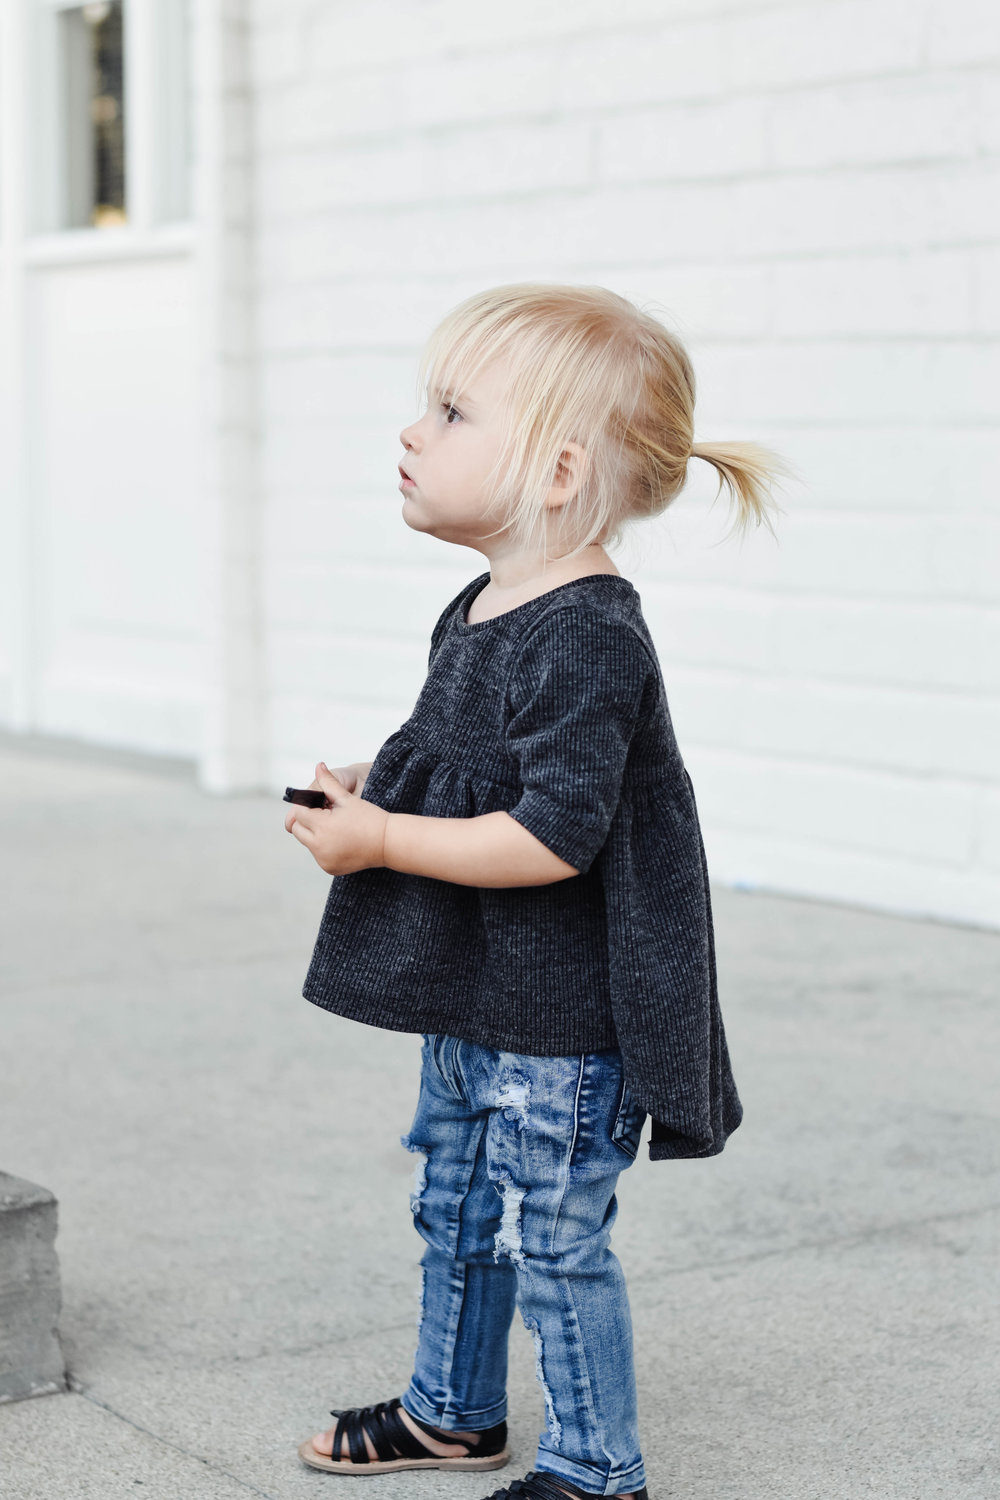 Kids Baby Ripped Jeans - Distressed Denim - Kids Fall Fashion Guide | Raxtin Clothing Co